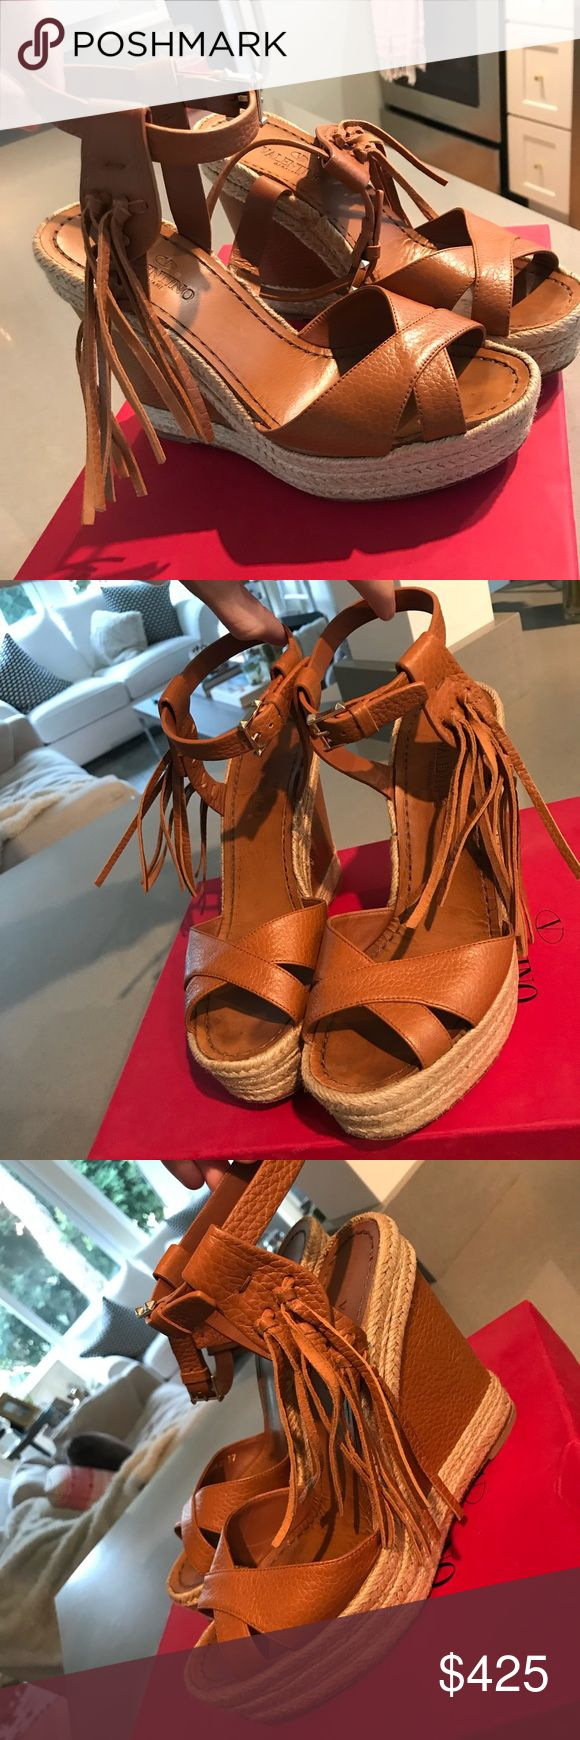 VALENTINO WEDGES Leather Valentino wedge. Super comfortable. Worn once. Adjustable ankle buckle Valentino Shoes Wedges